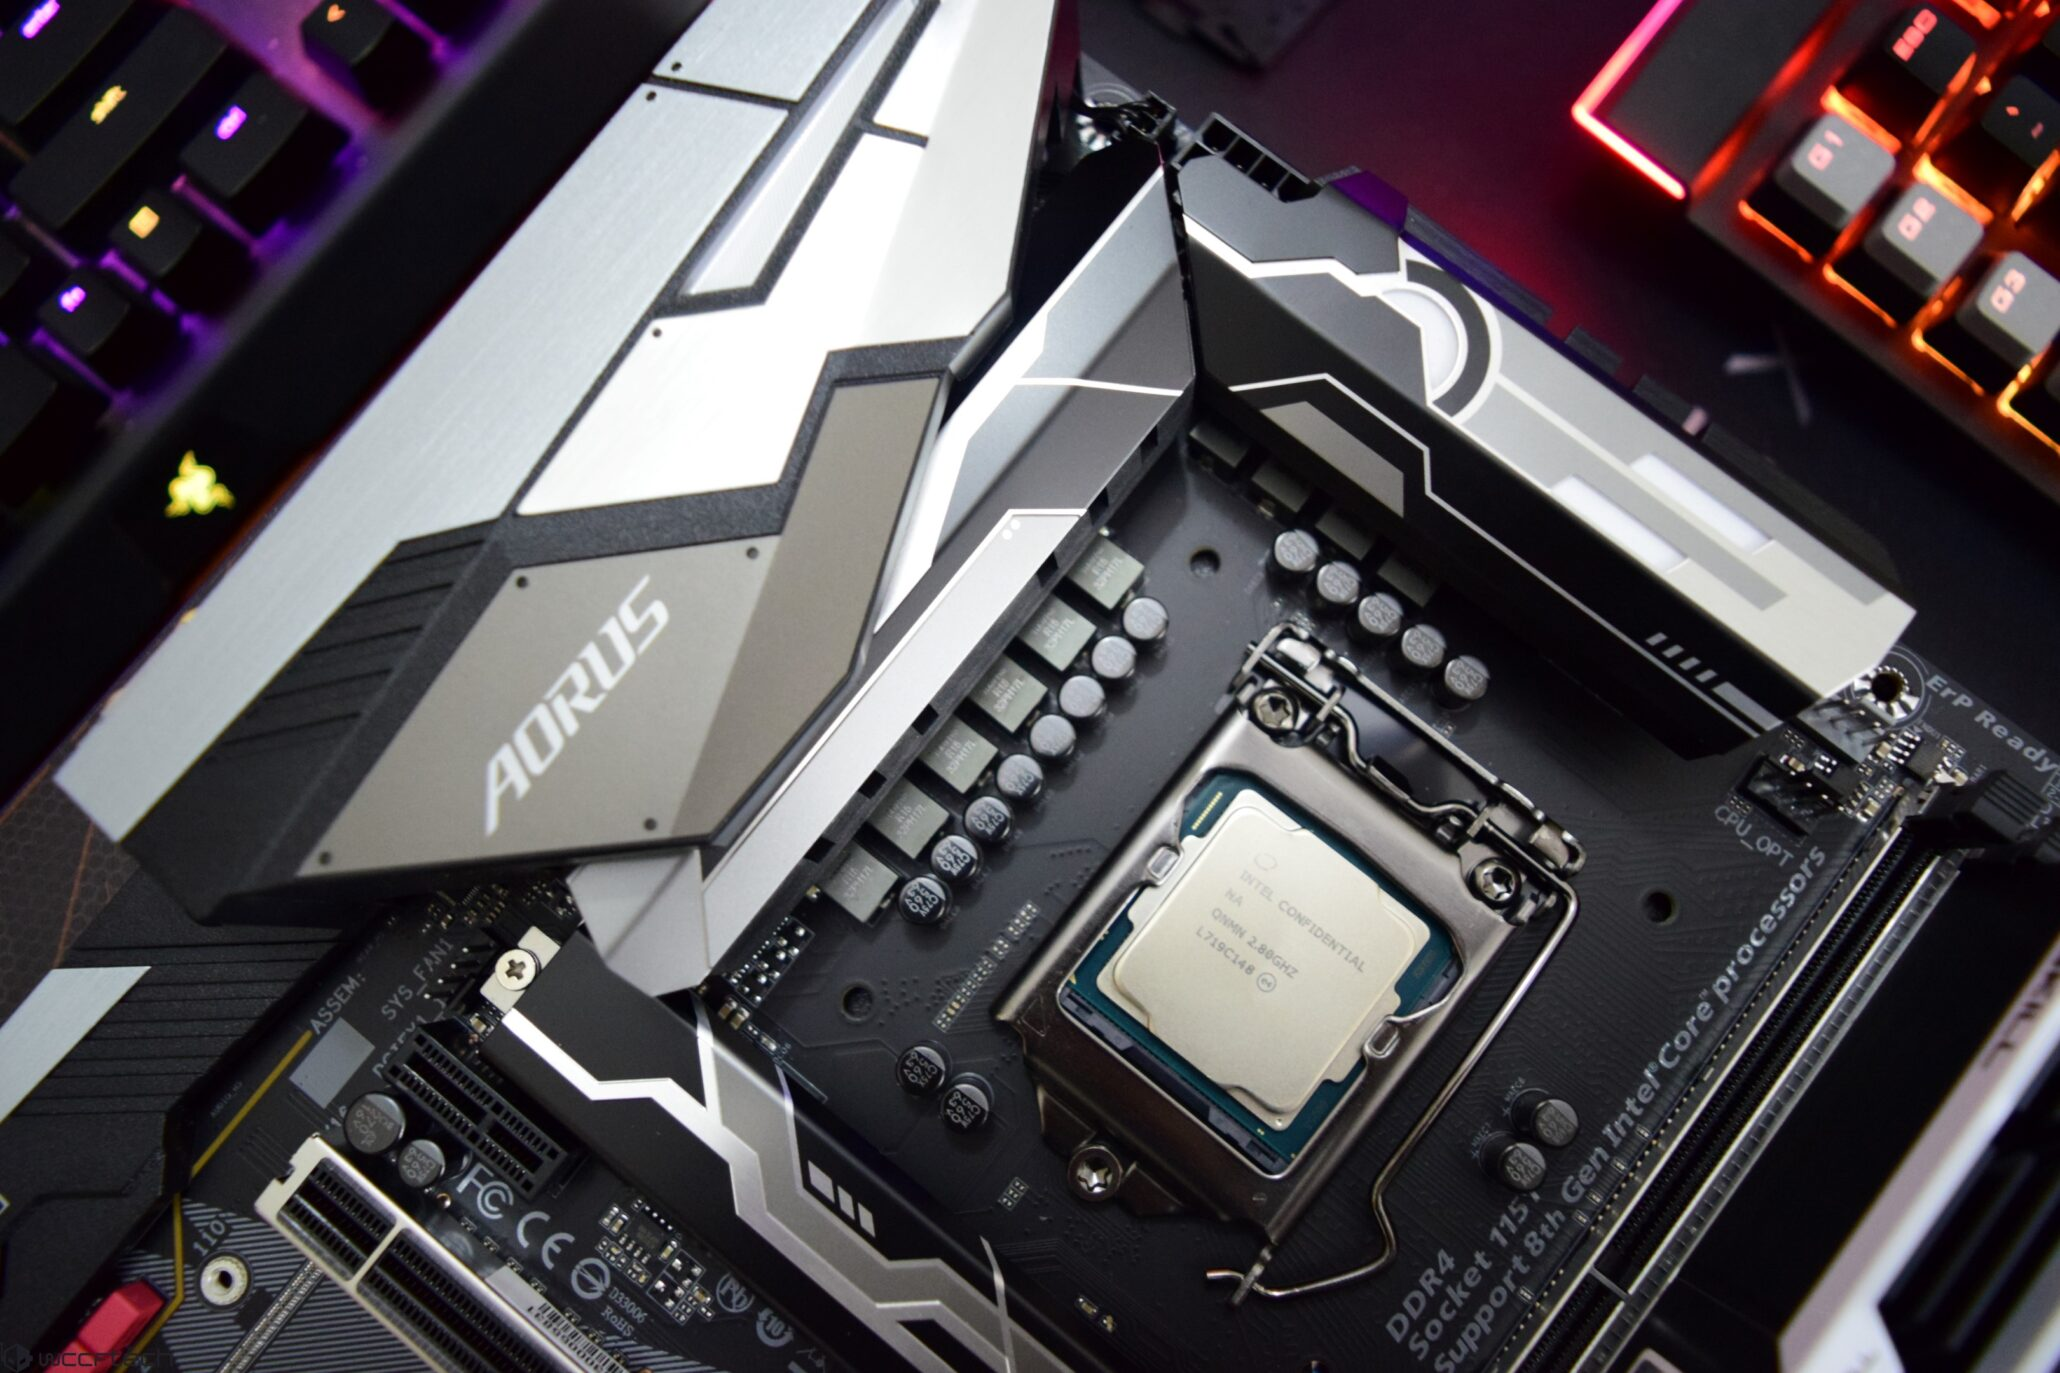 Intel Core i7-9700K Overclocked To 5 5 GHz and Benchmarked